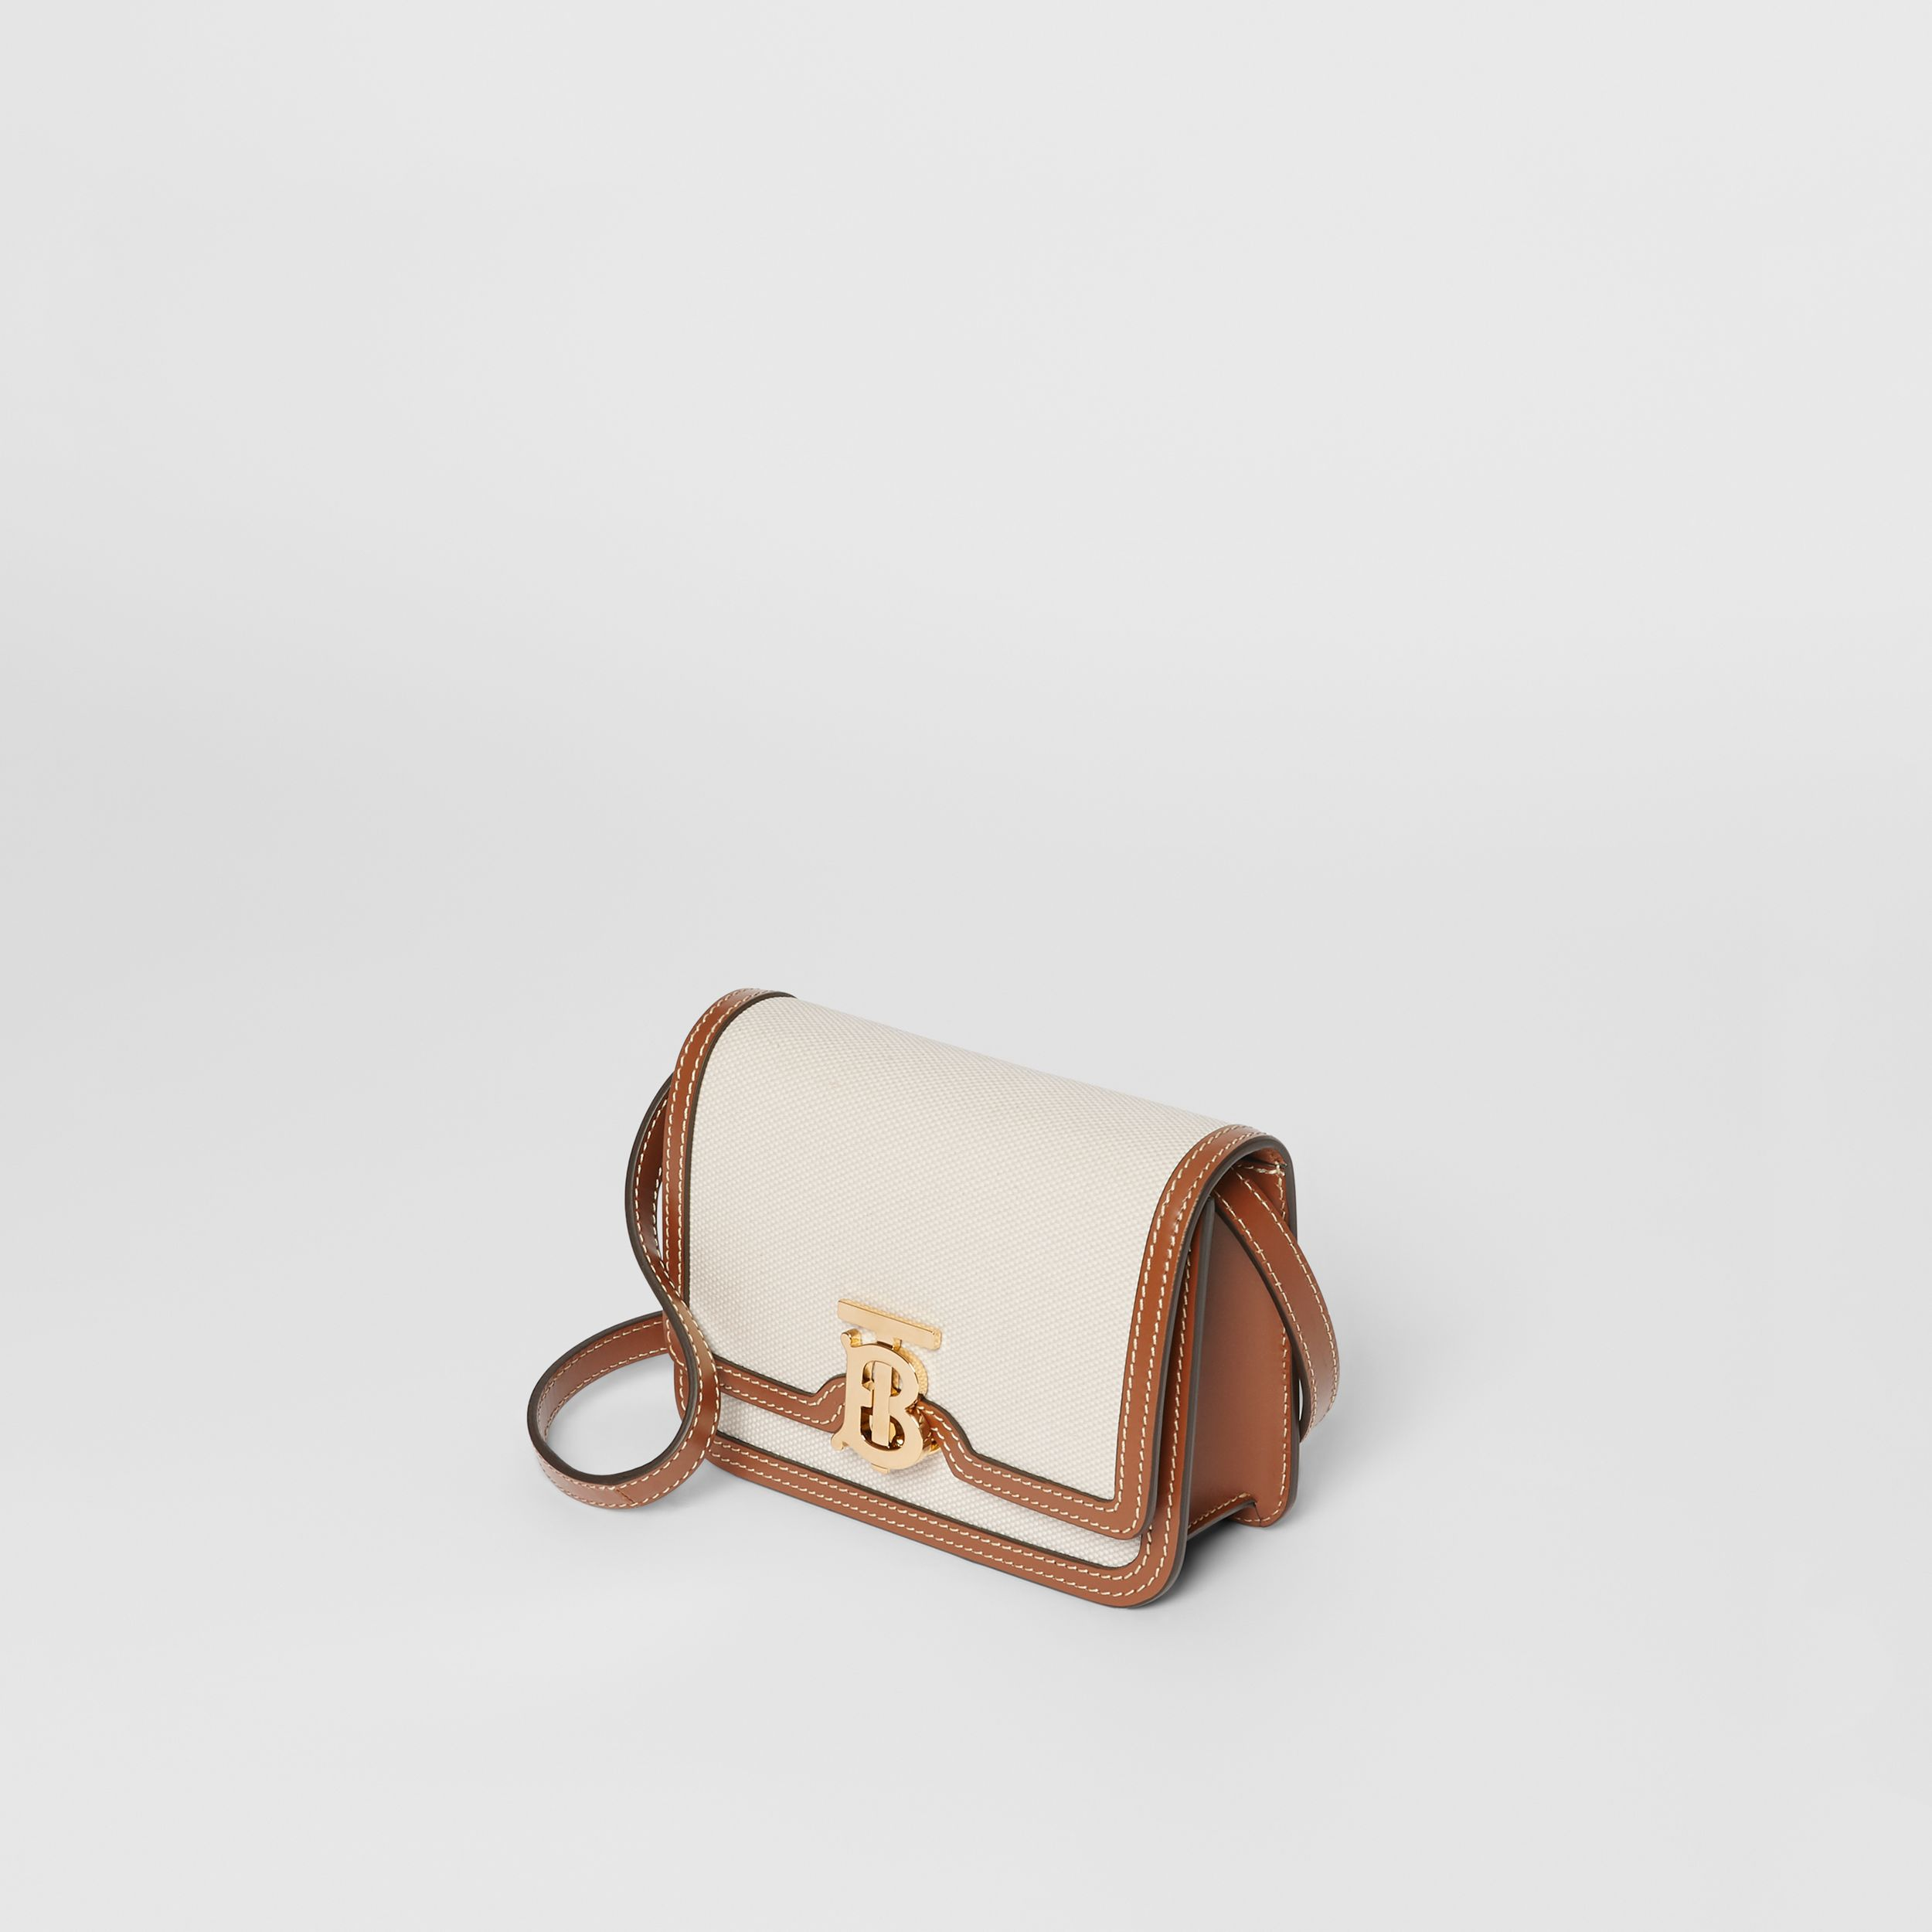 Mini Two-tone Canvas and Leather TB Bag in Natural/malt Brown - Women | Burberry - 4